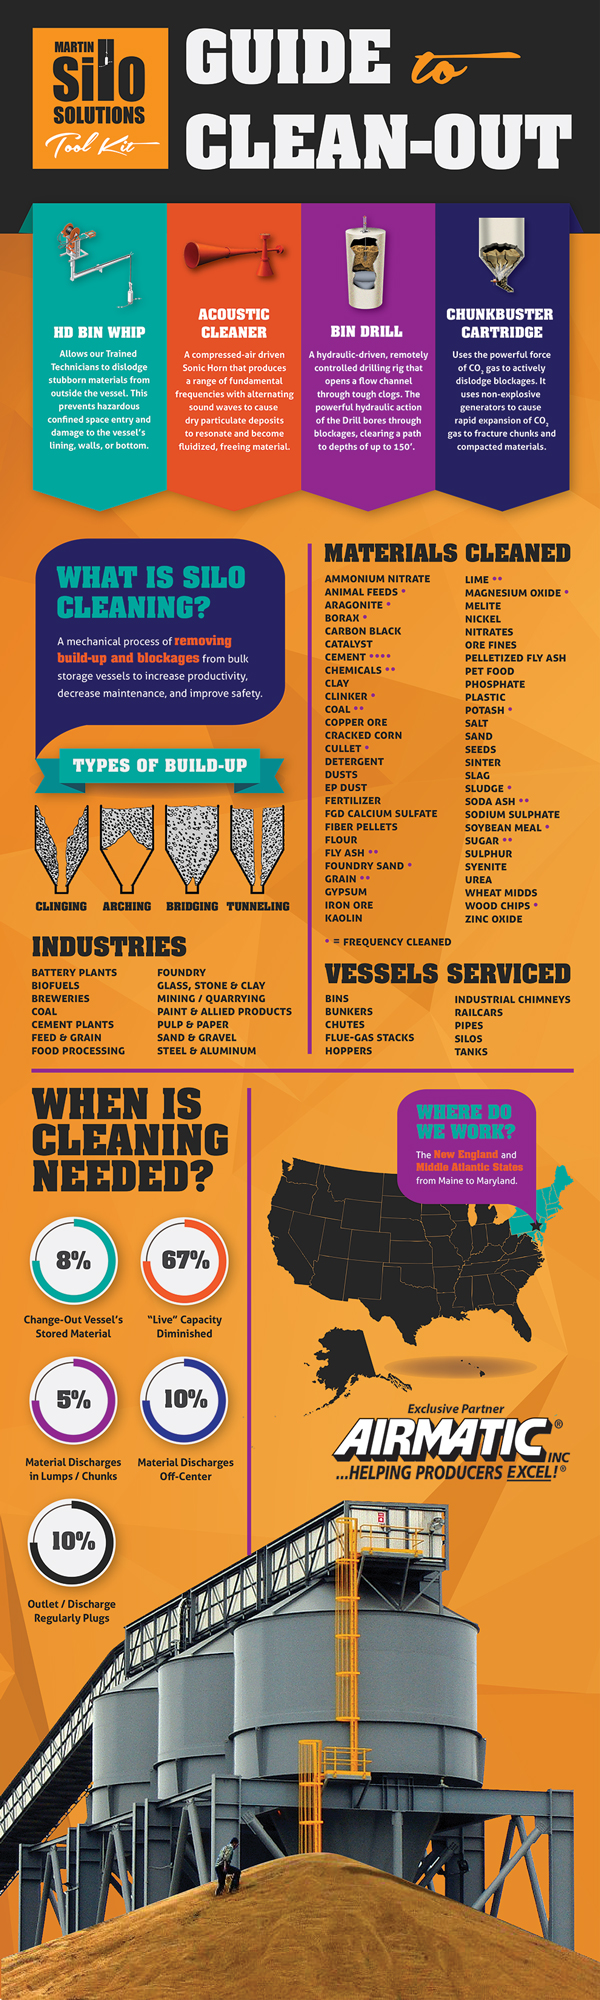 SILO-SOLUTIONS-Infographic